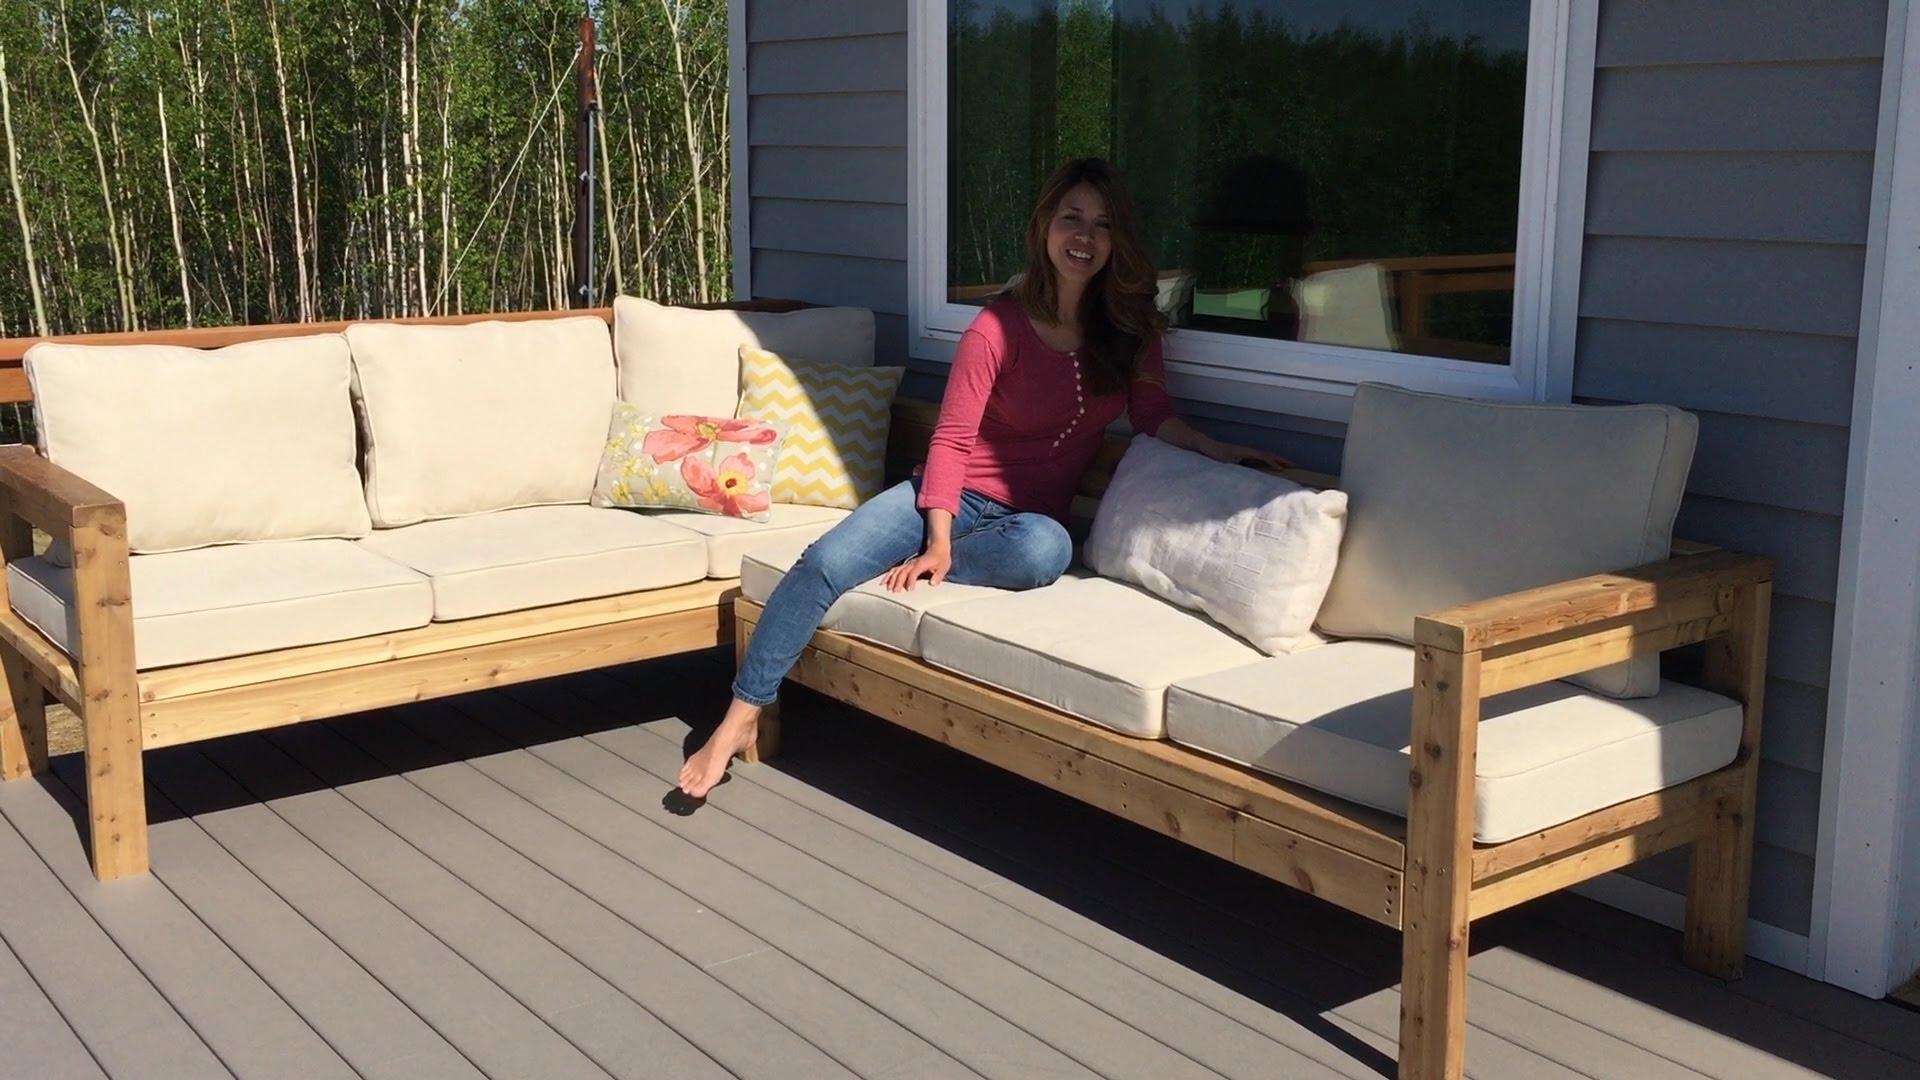 How To Build A 2X4 Outdoor Sectional Tutorial – Youtube Intended For Building A Sectional Sofa (Image 12 of 15)